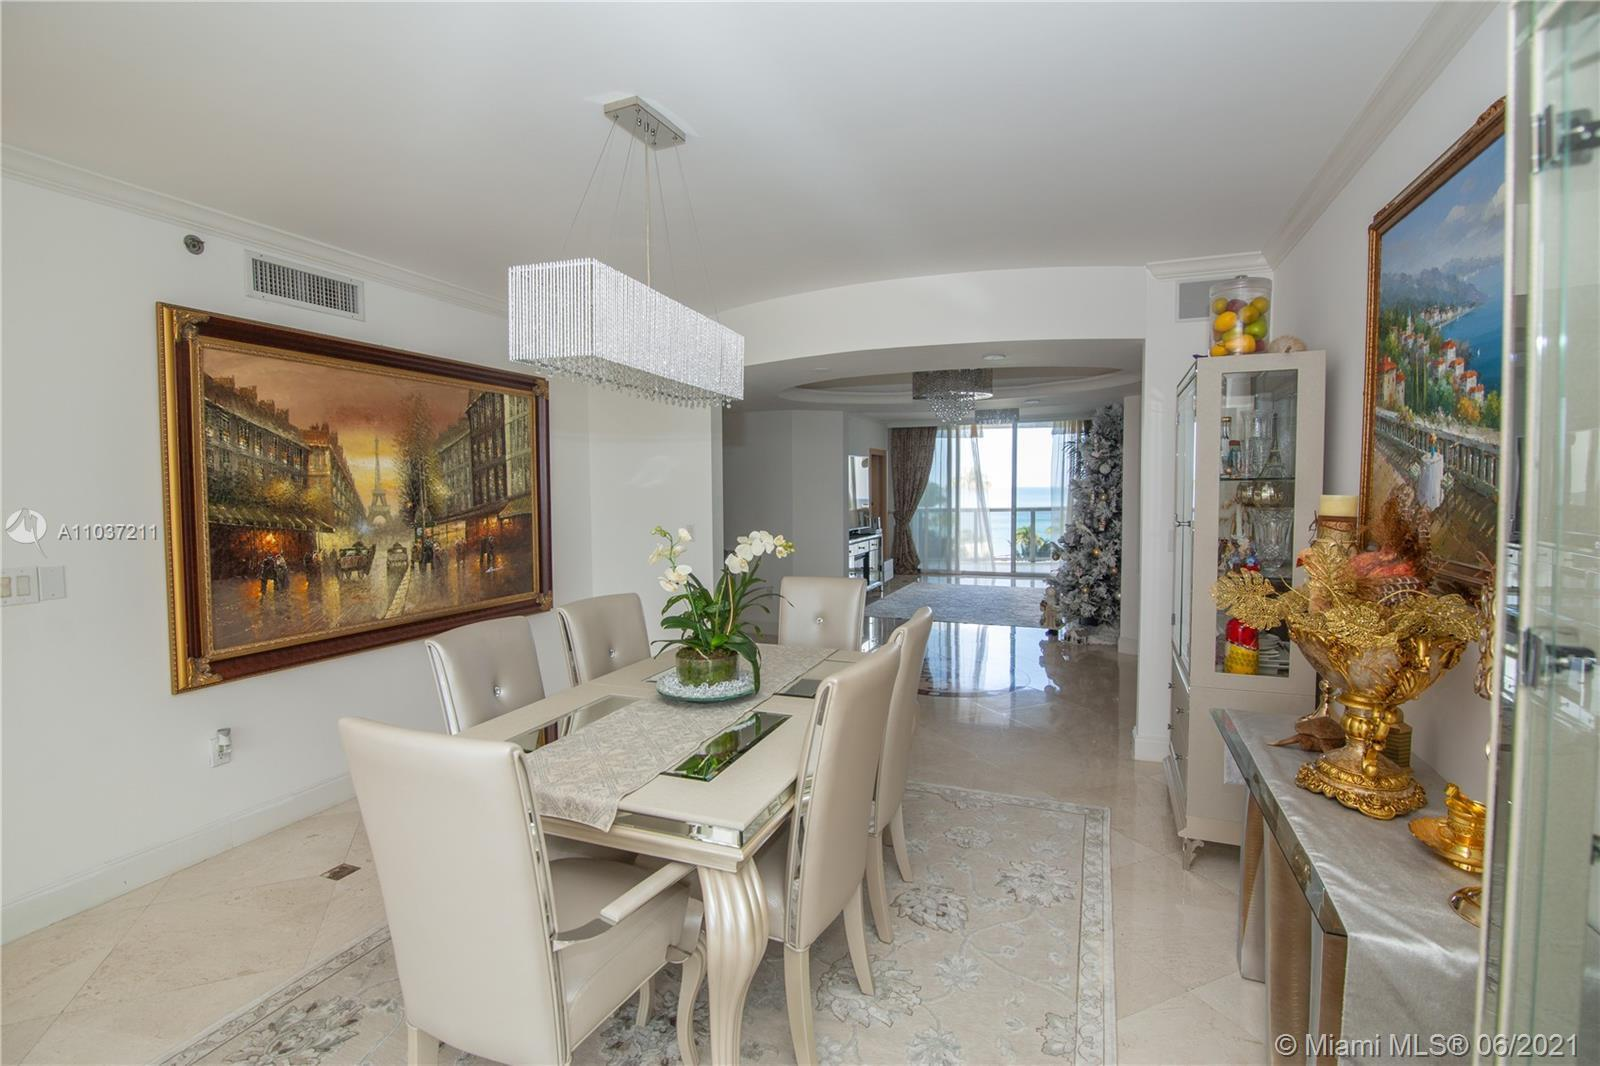 Spacious and luxurious 3/3 in resort style OCEAN lll of Sunny Isles Beach. Apartment has amazing cit